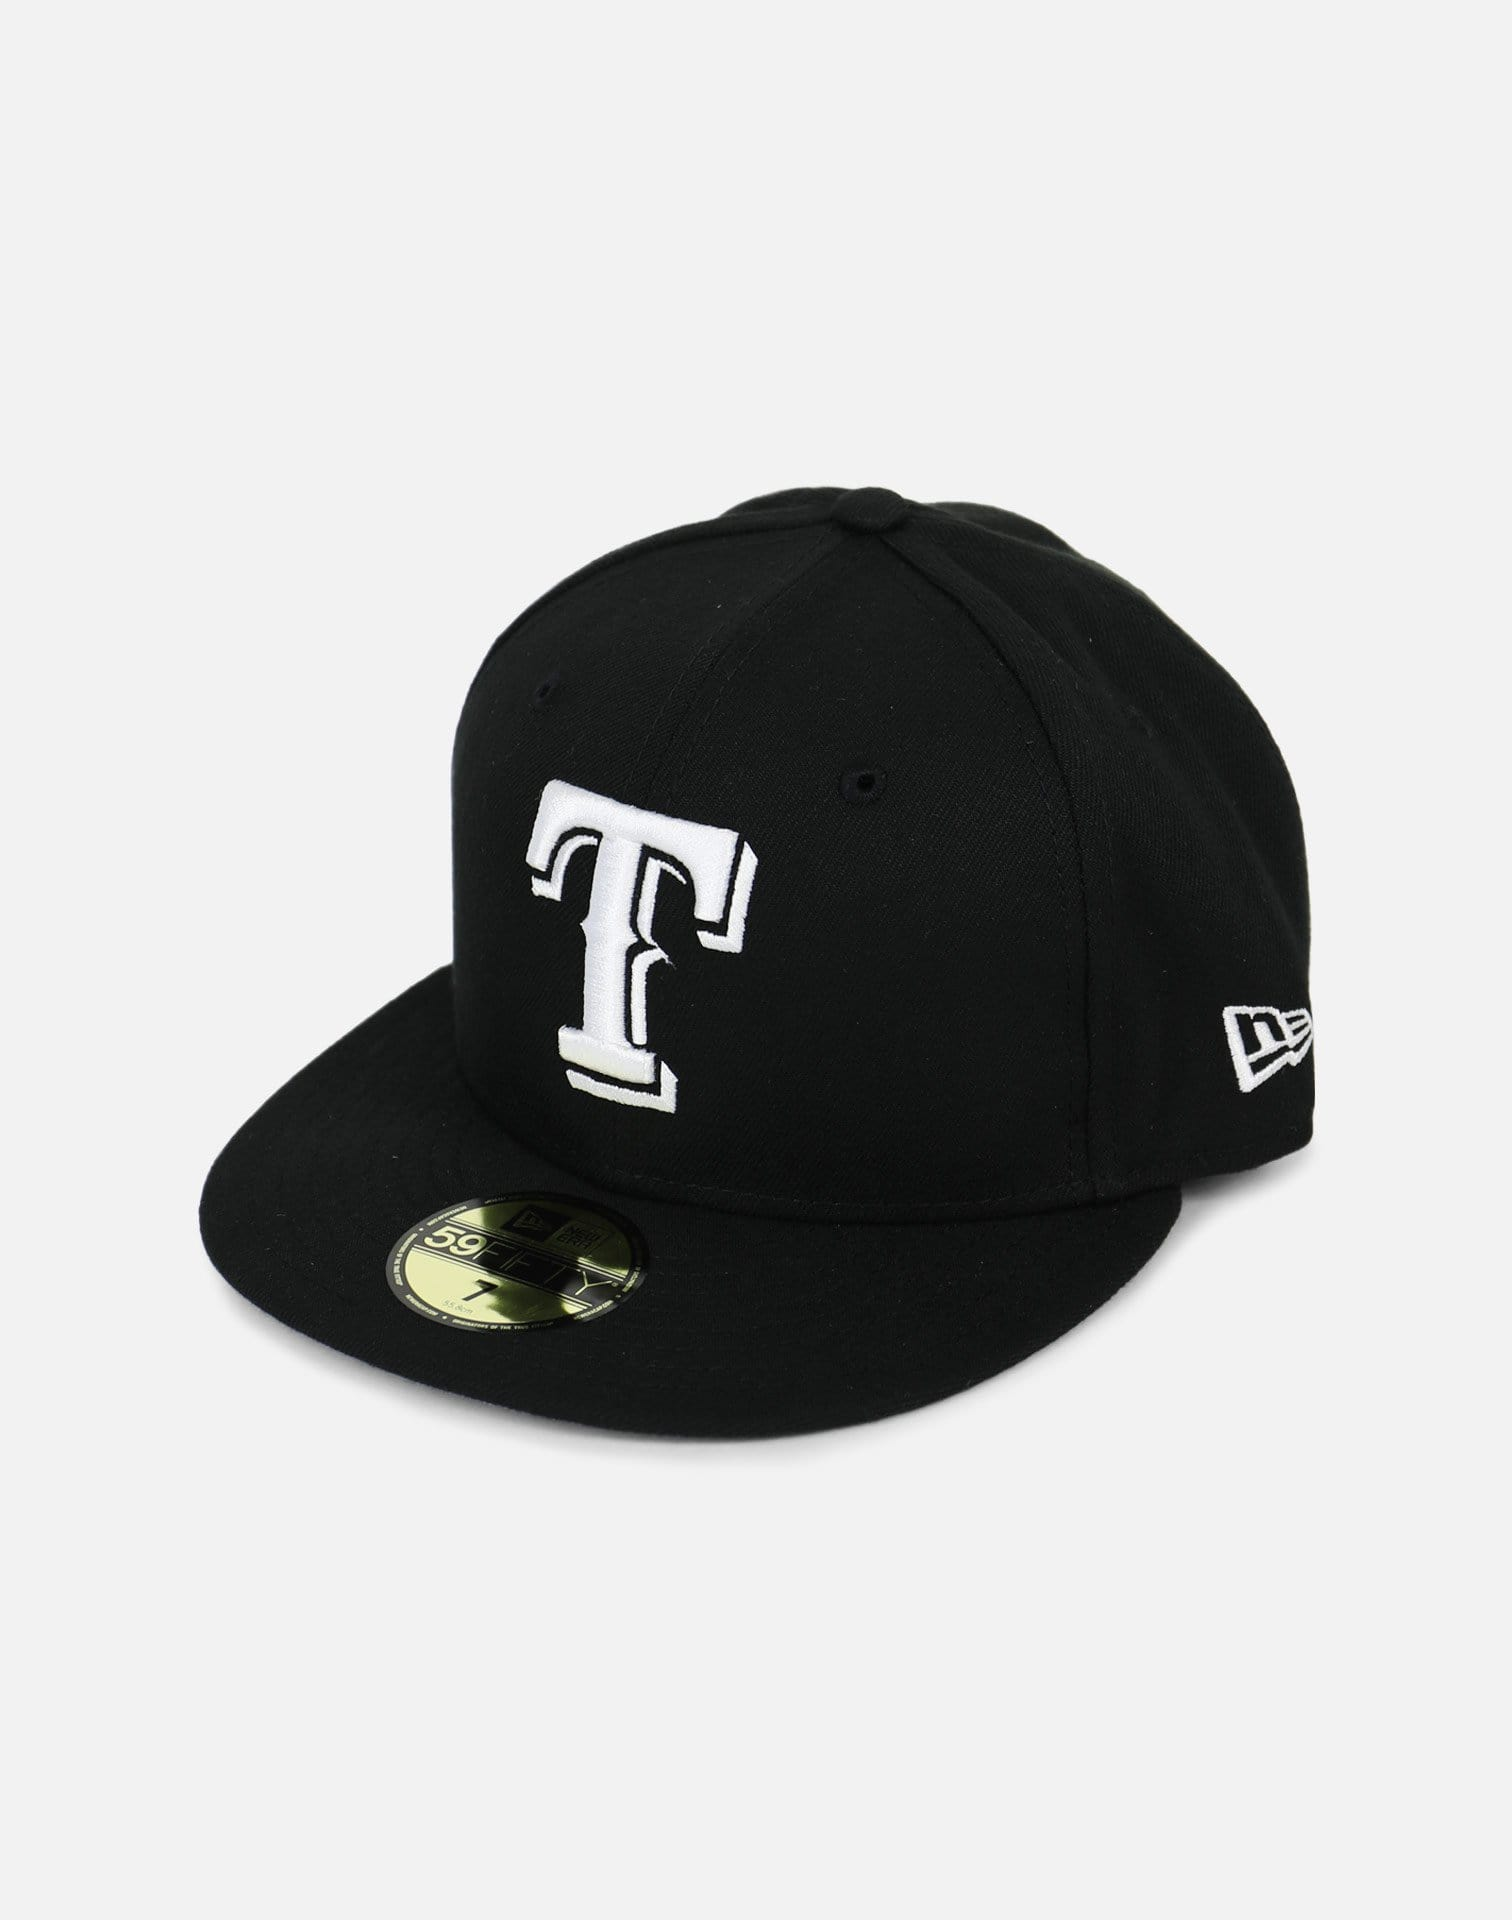 New Era Texas Rangers Black Fitted Hat (Black)